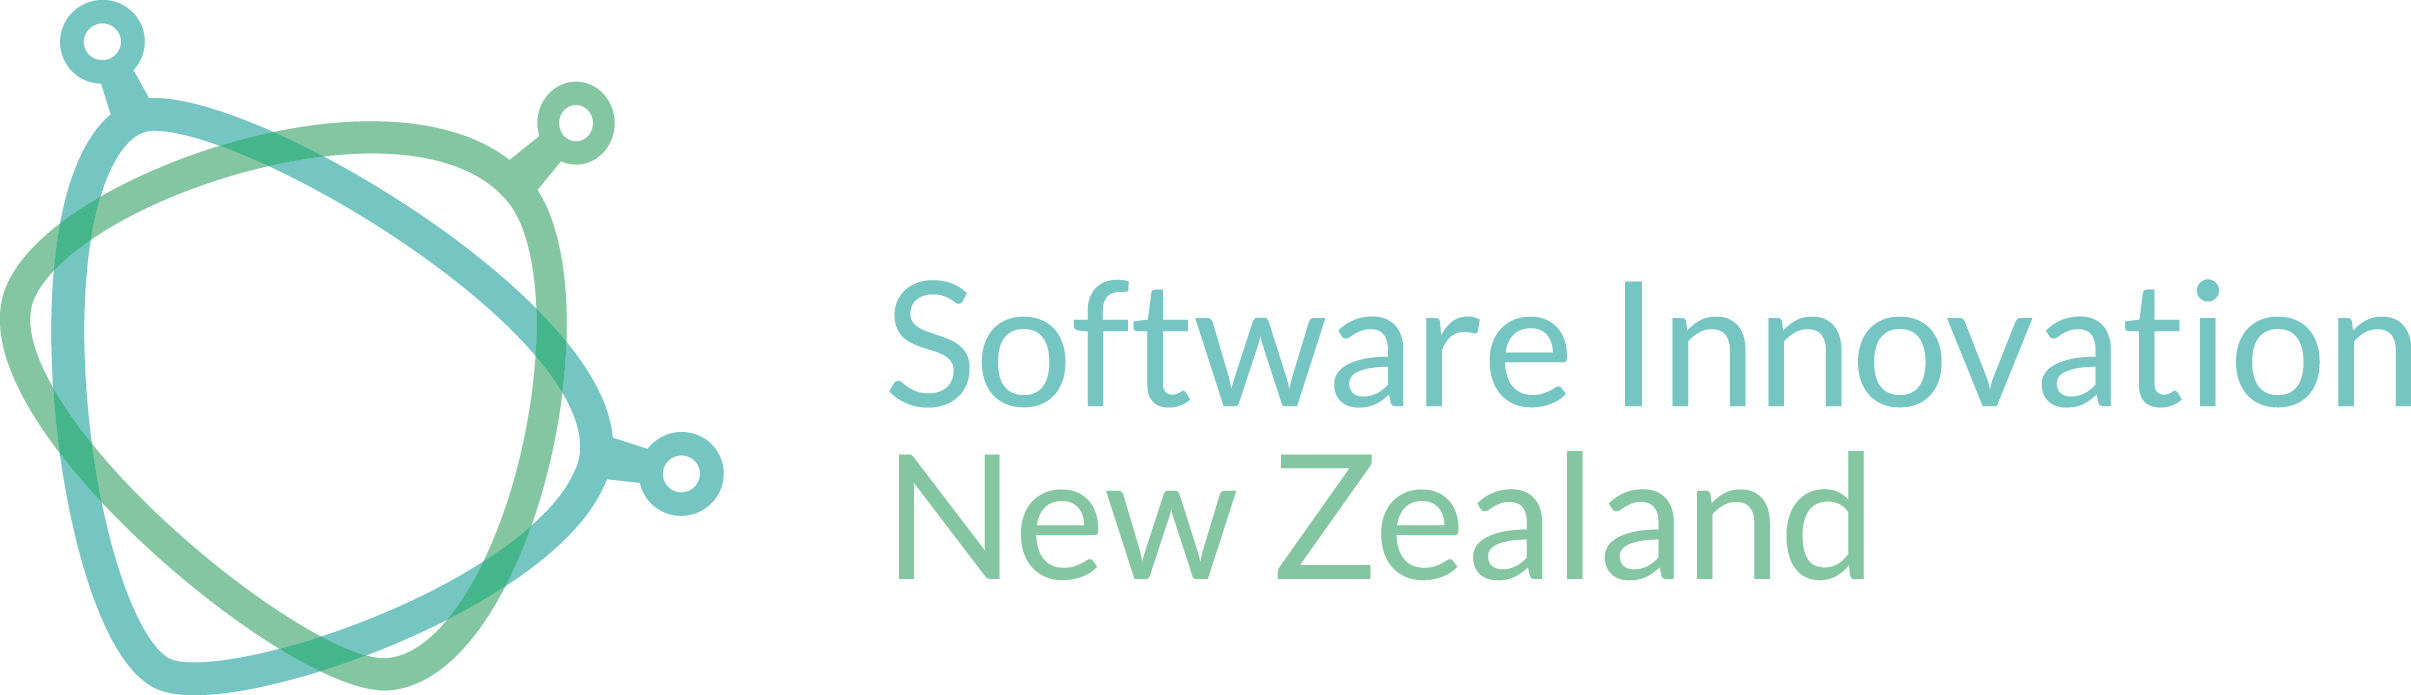 Software Innovation New Zealand